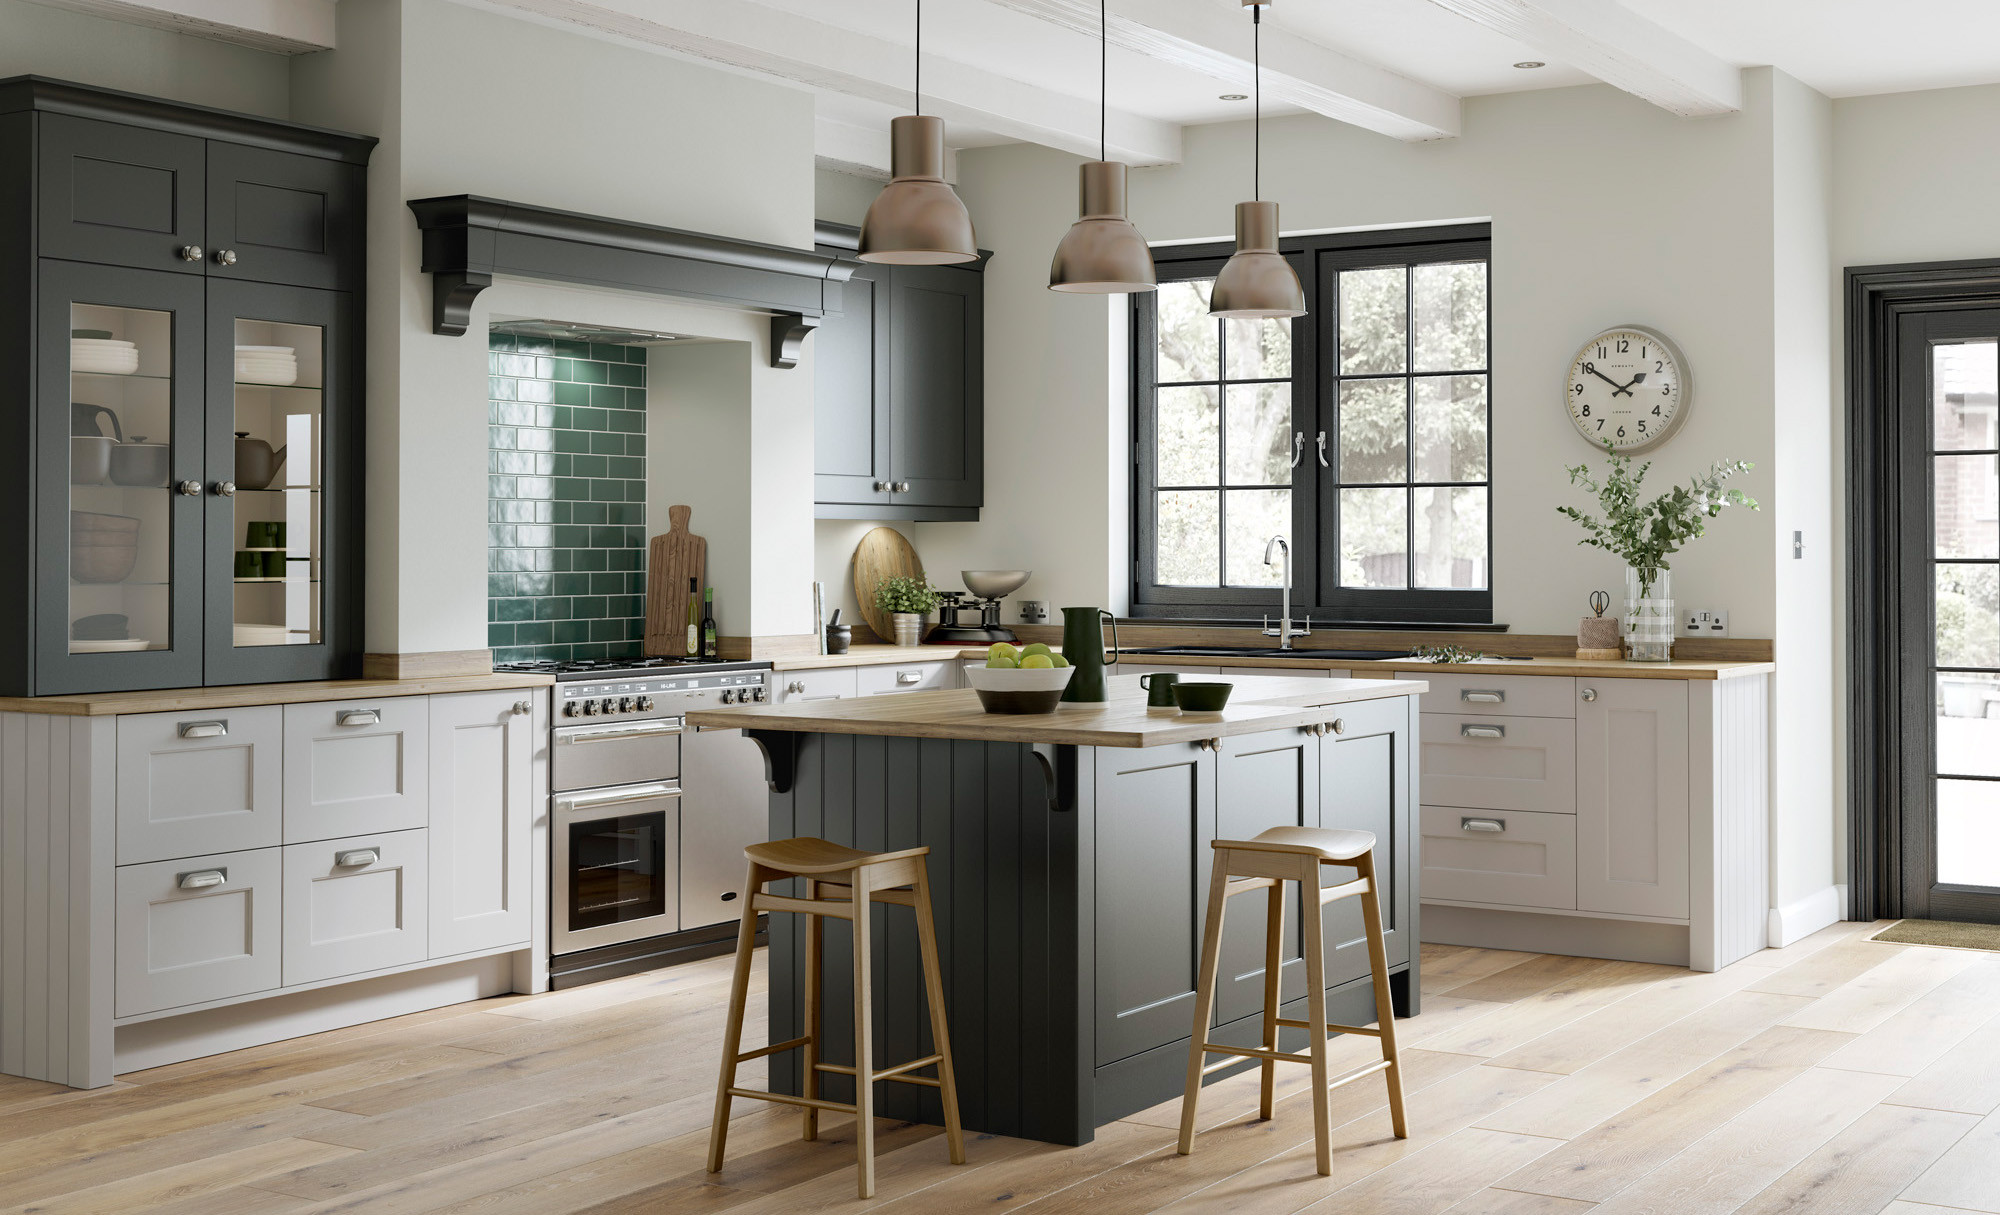 Shaker Doors Kitchen Smooth Painted Shaker Doors Florence Graphite Light Grey